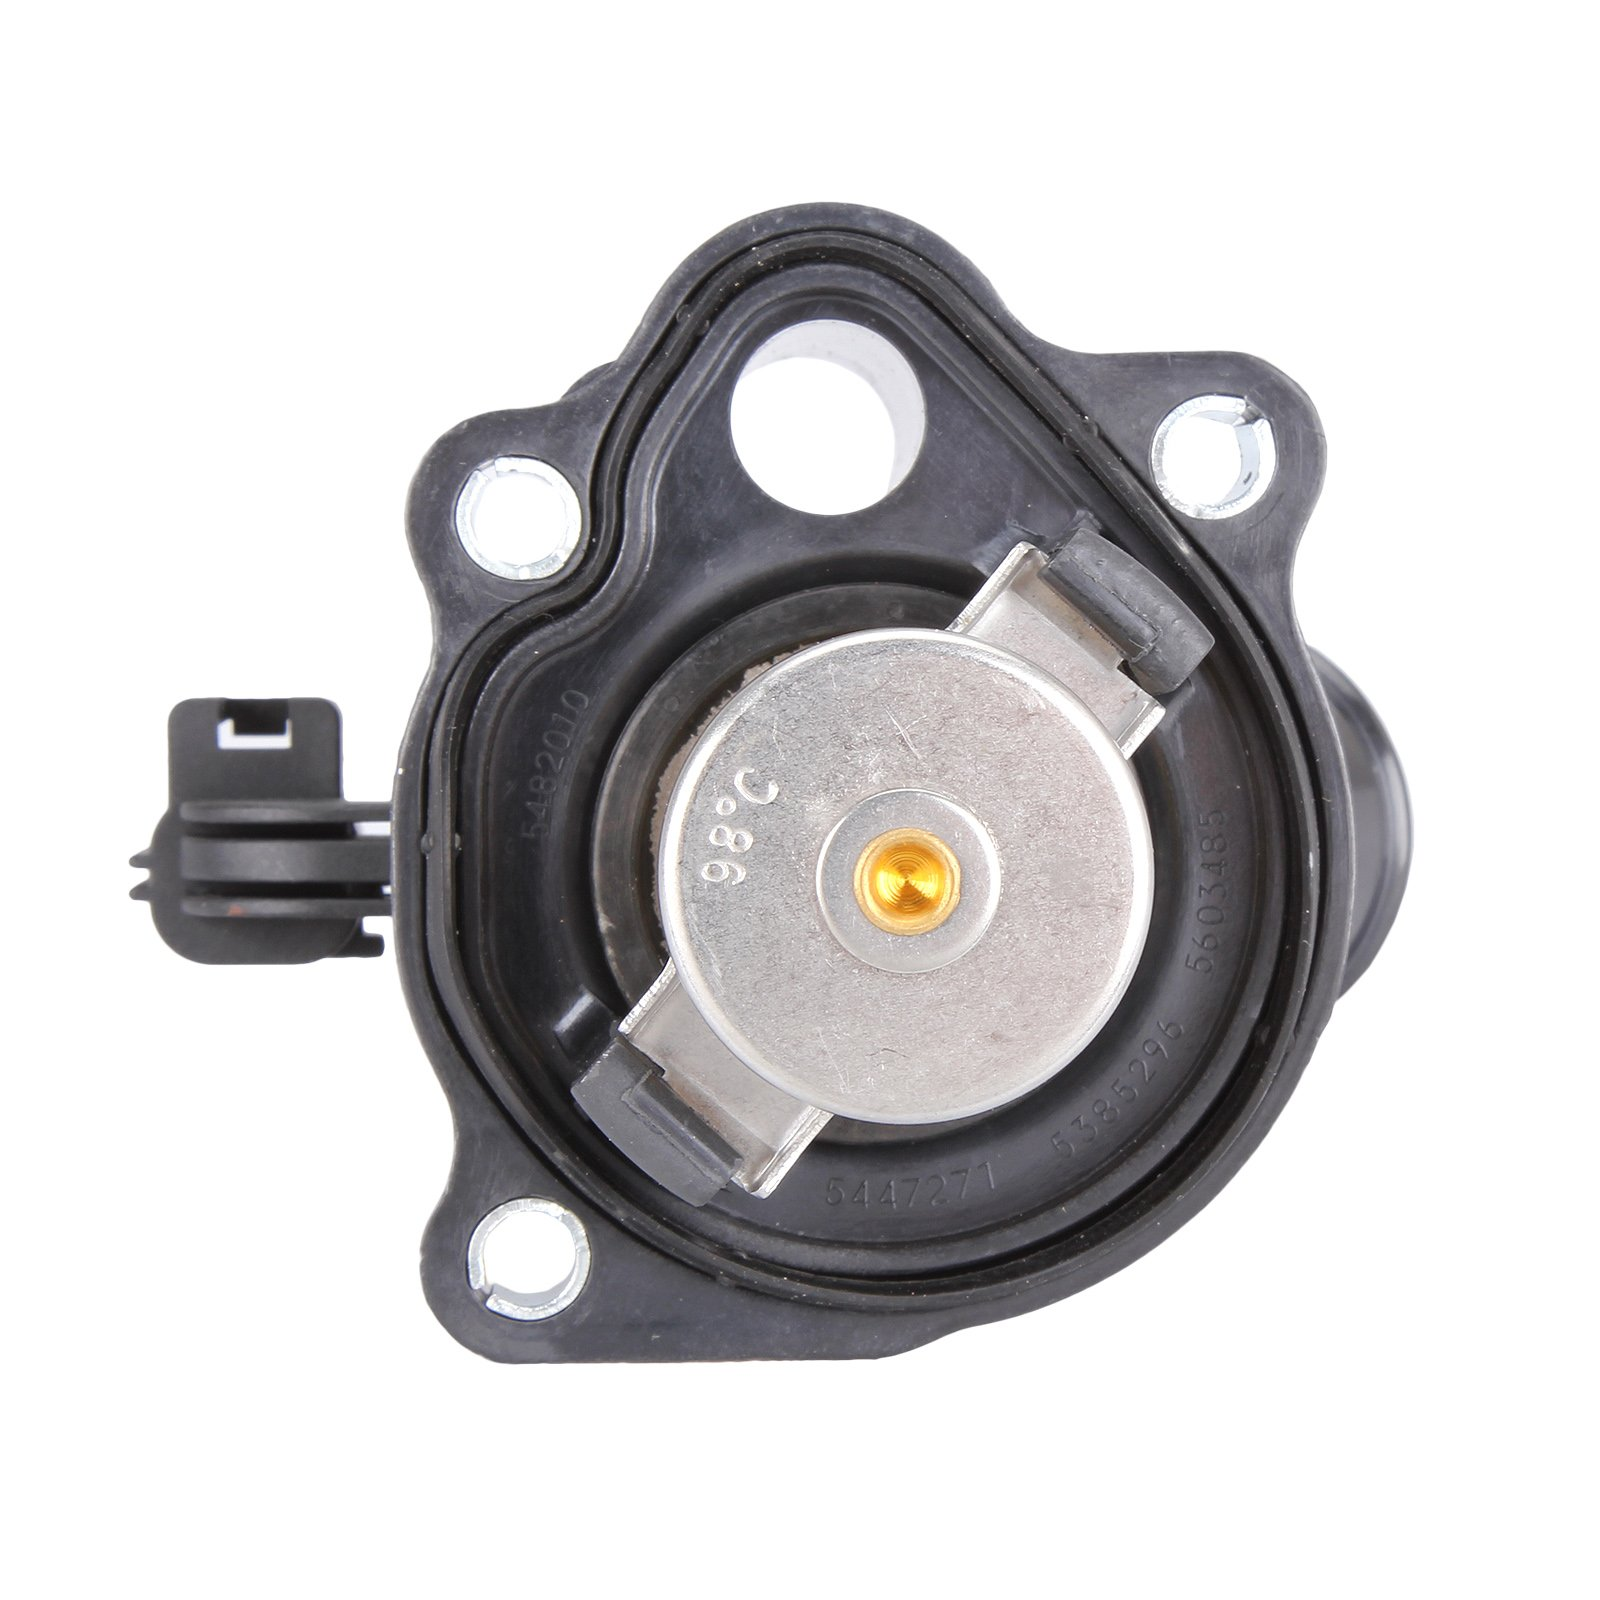 AutoHorizon Thermostat Housing Water Outlet 1S7Z8575AG For Ford Focus Ranger 2.3 2.0 2005-2011